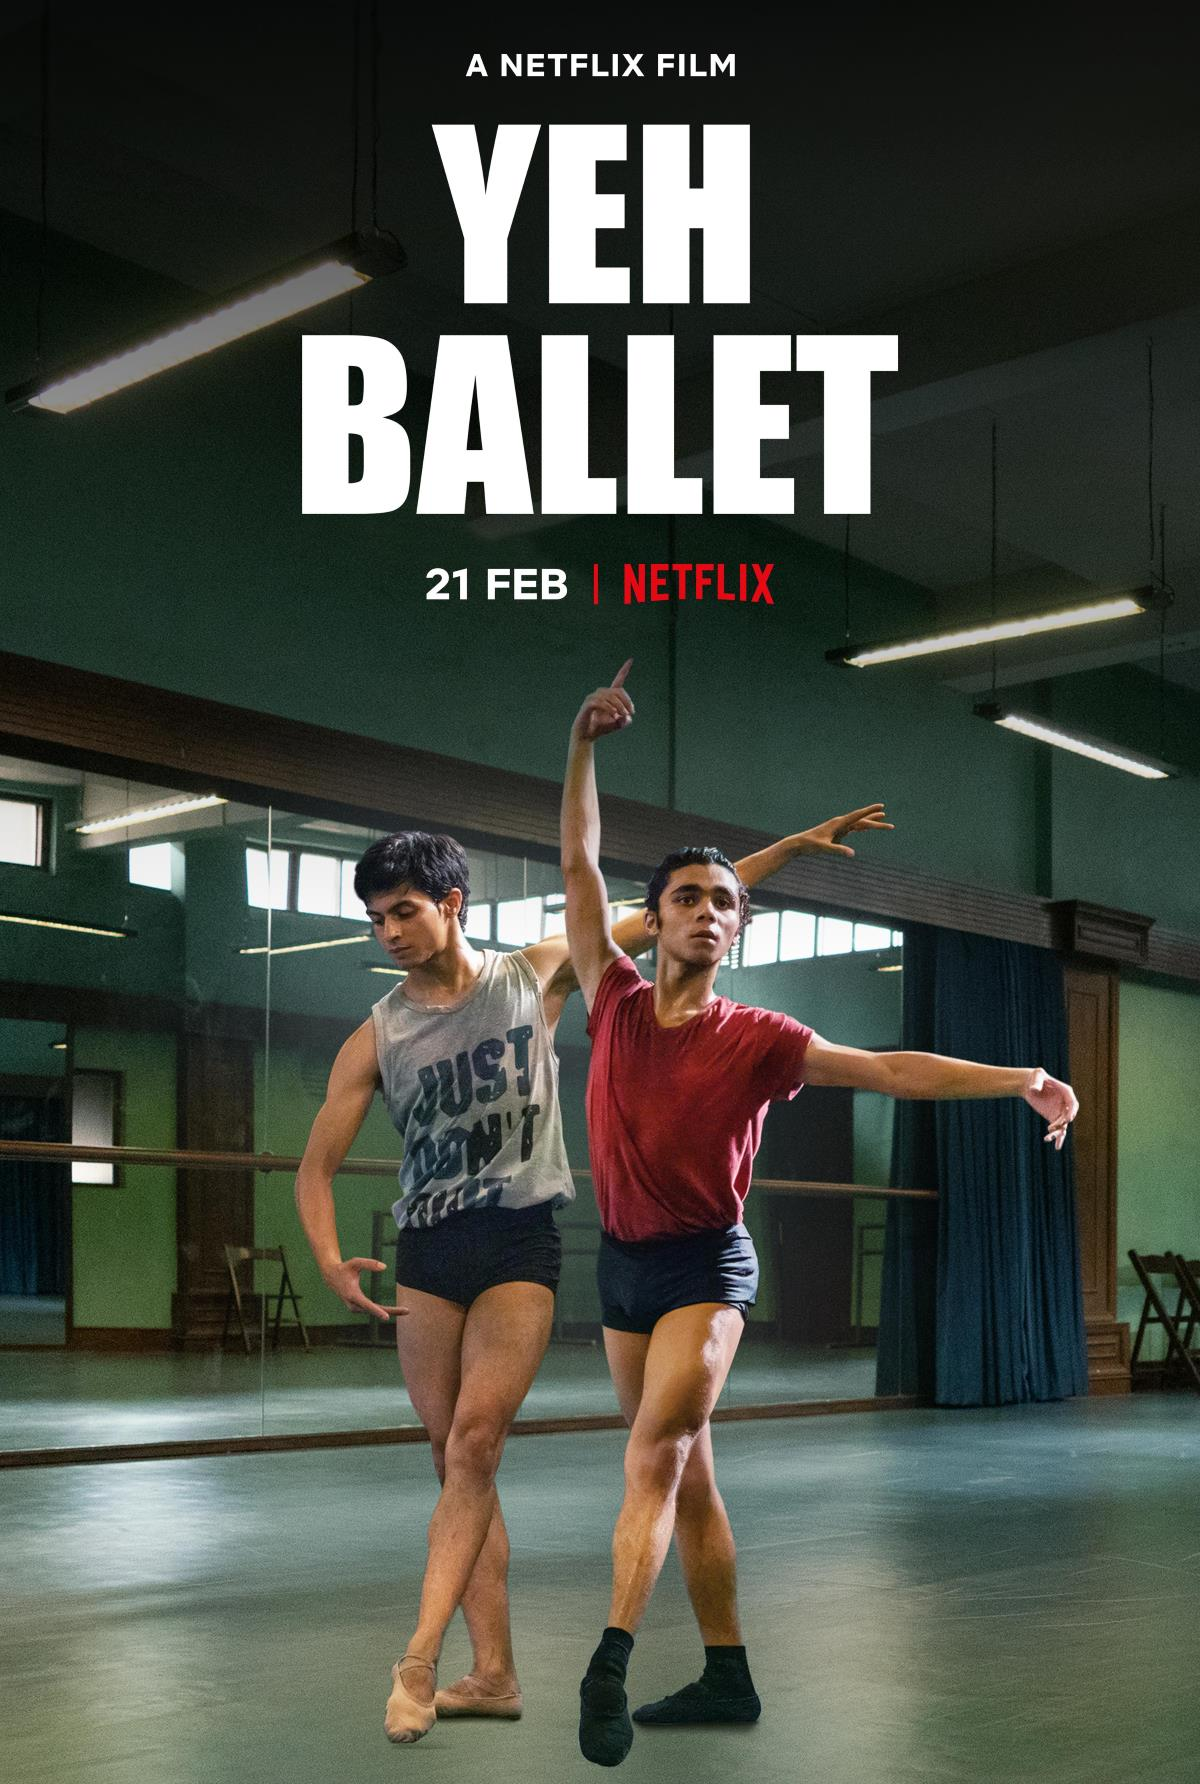 yeh ballet poster Yeh Ballet poster